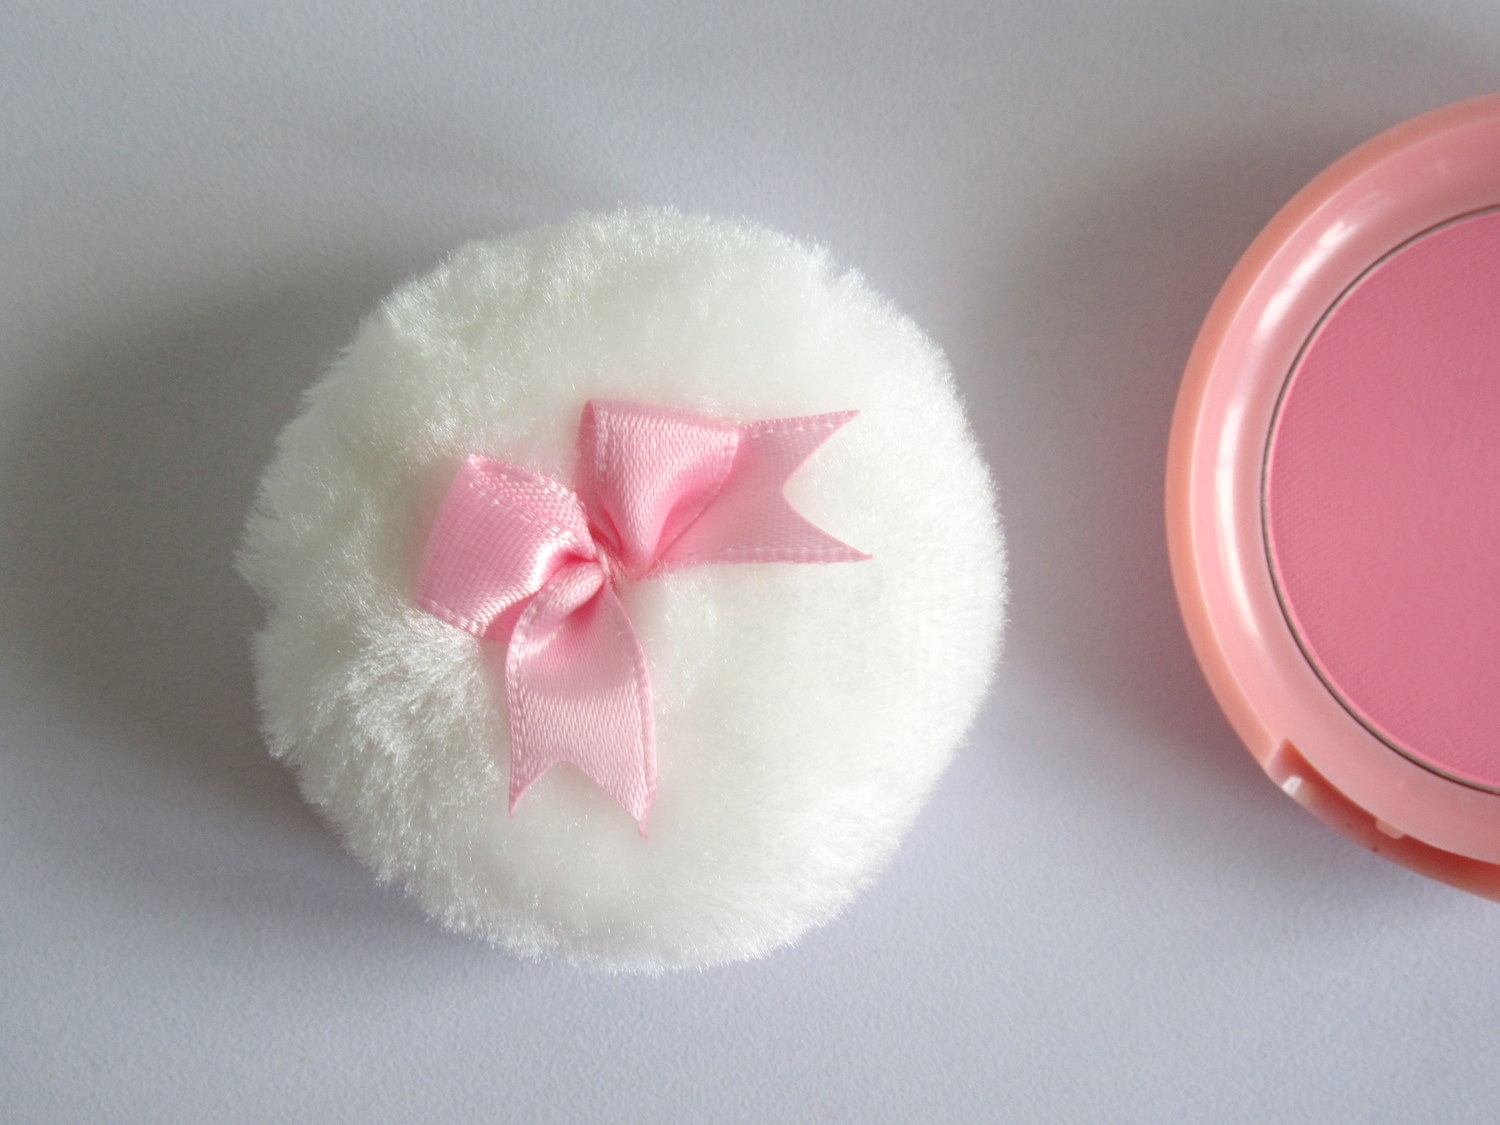 etude house lovely cookie blusher pk002 grapefruit jelly, etude house grapefruit jelly